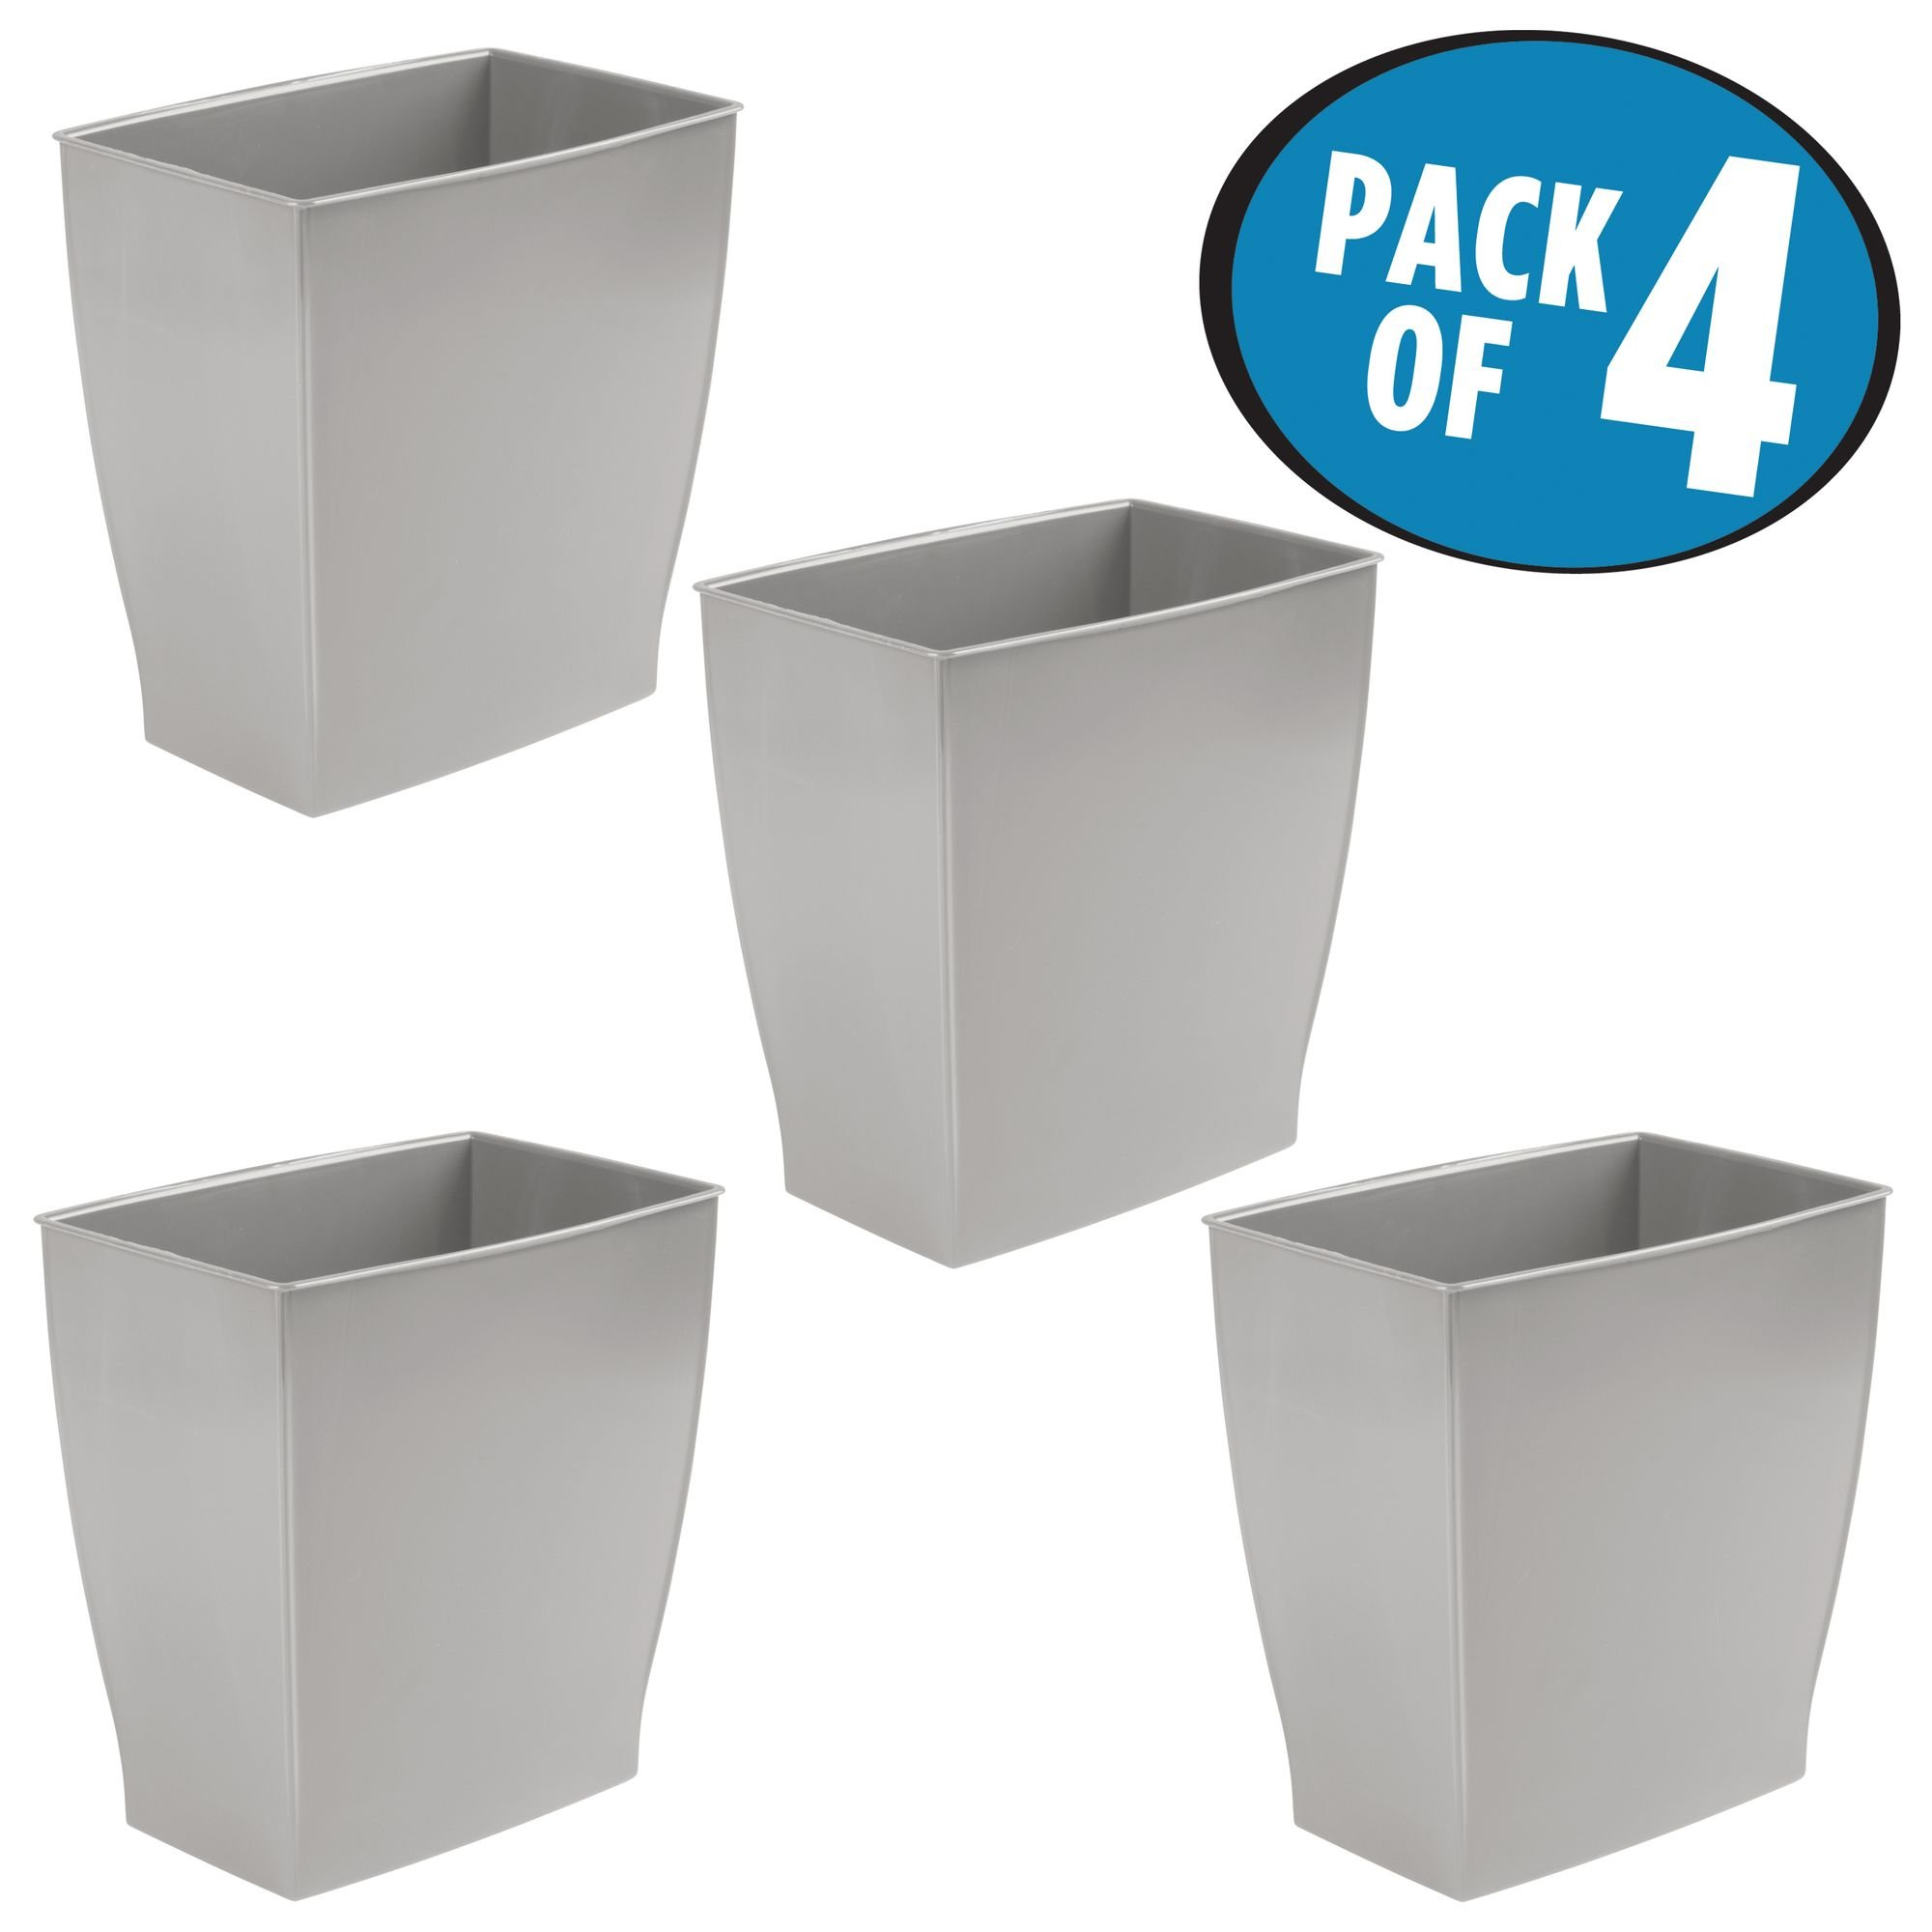 mDesign Rectangular Trash Can Wastebasket, Small Garbage Container Bin for Bathrooms, Powder Rooms, Kitchens, Home Offices and more - Pack of 4, Shatter-Resistant Plastic, Gray